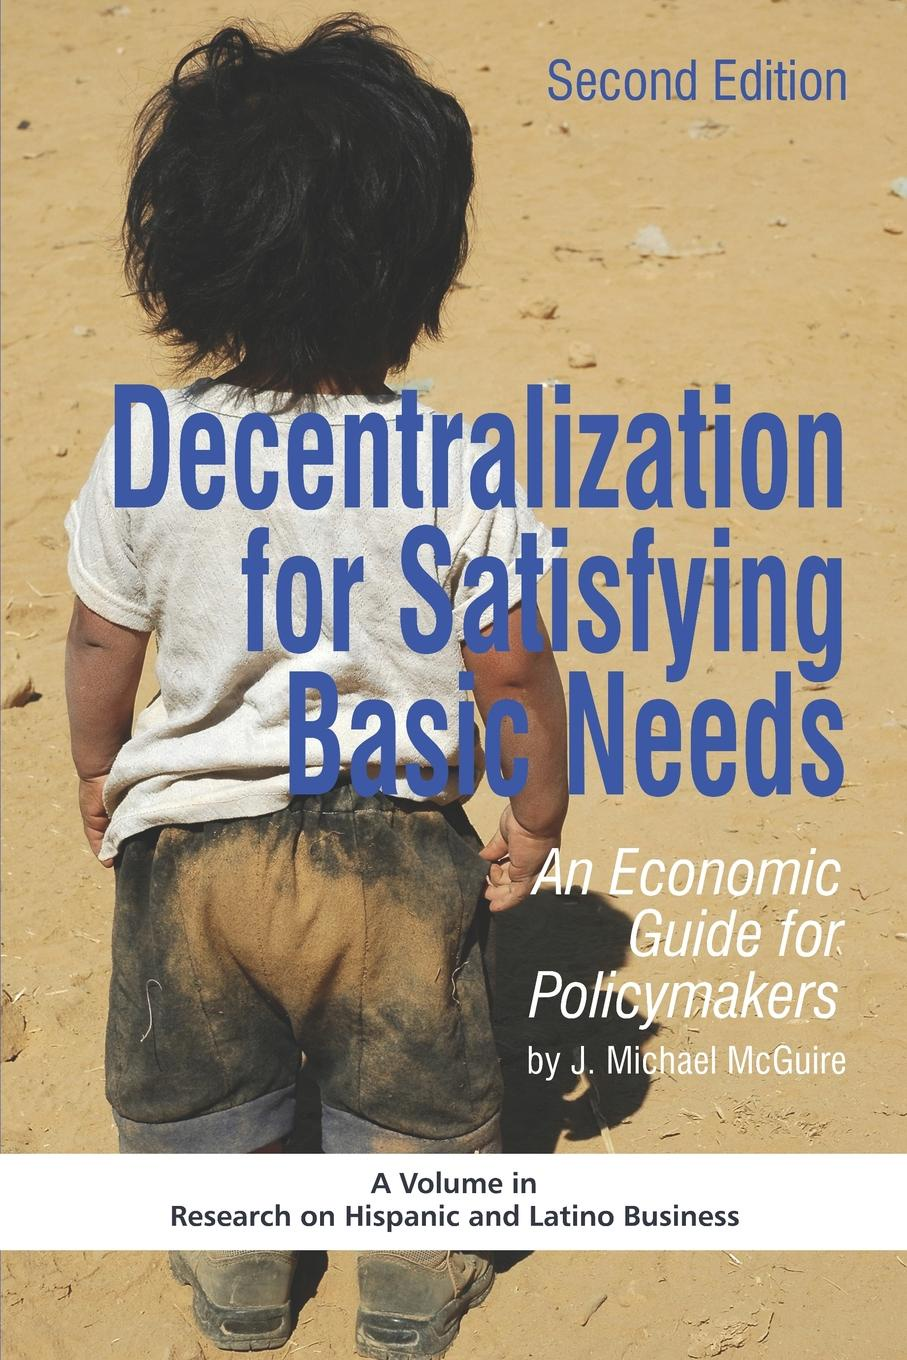 J. Michael McGuire Decentralization for Satisfying Basic Needs. An Economic Guide for Policymakers (Revised Second Edition) (PB) недорго, оригинальная цена